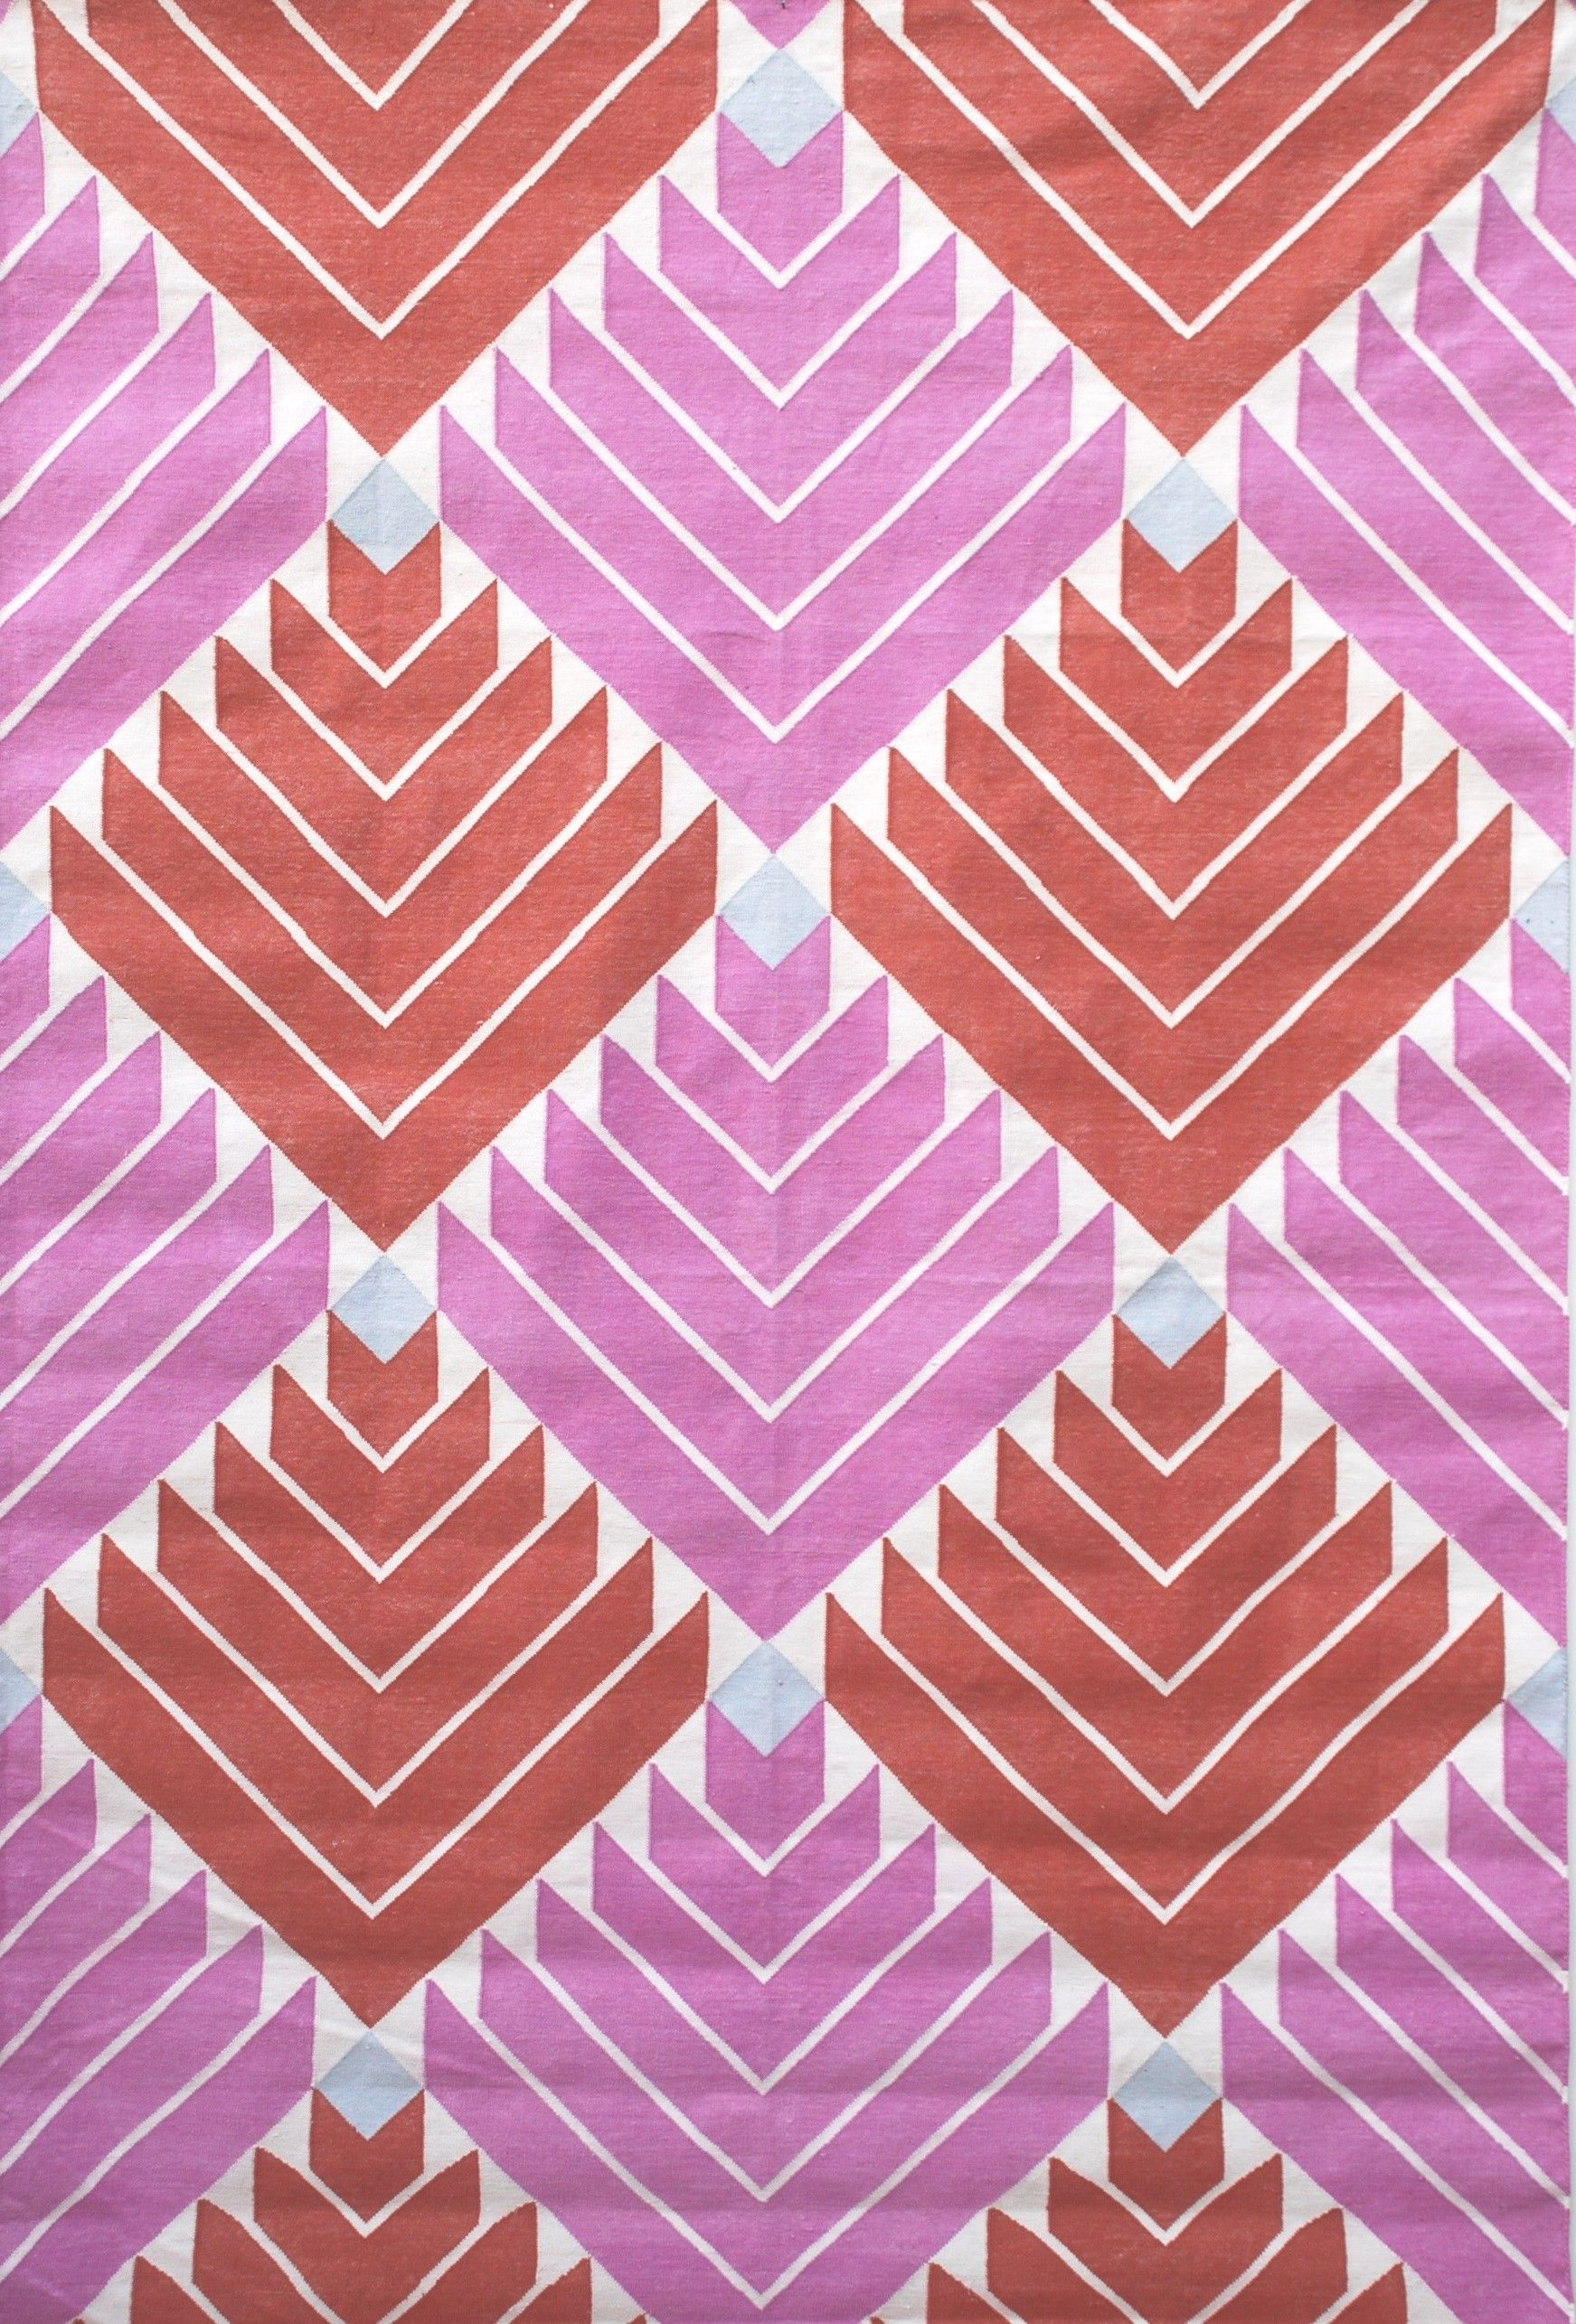 Beautiful Dhurrie Rugs For Floor Decor Ideas Purple And